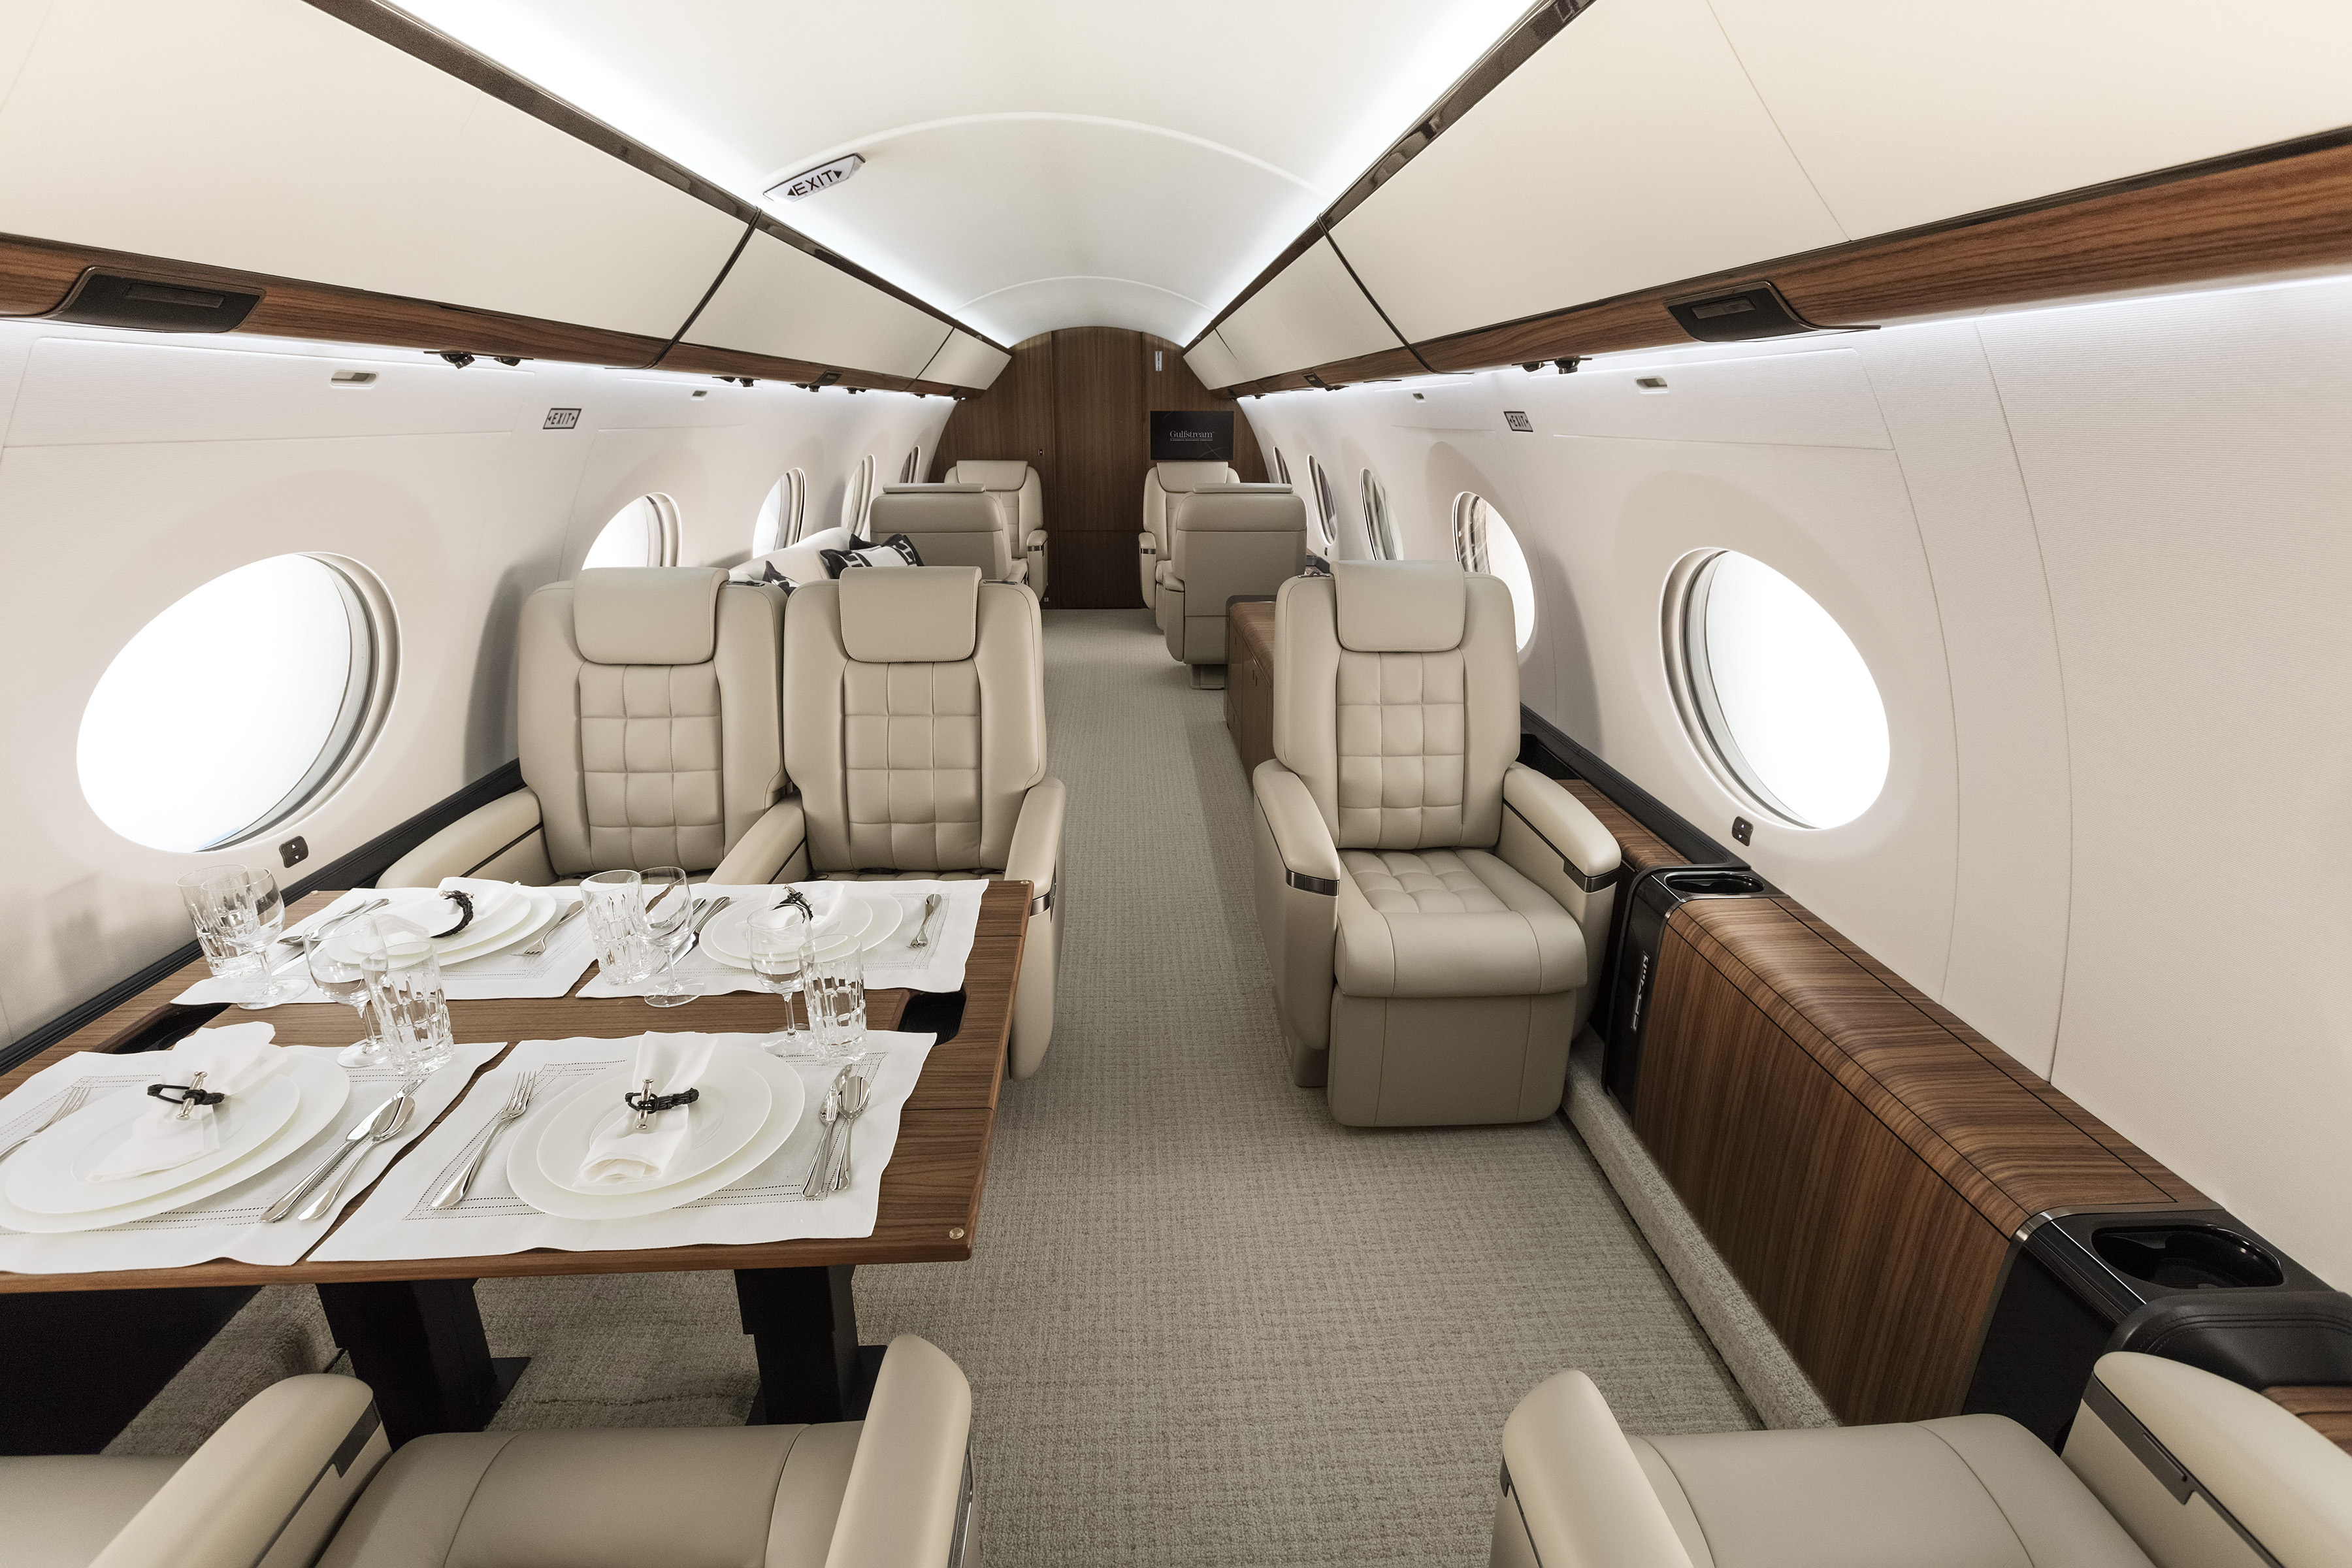 Gulfstream G650 Interior  Wwwpixsharkcom  Images. Area Rugs Living Room. Living Room Design With Grey Sofa. Living Rooms Sets. Traditional Window Treatments Living Room. Living Room Armchair. Window Curtains Ideas For Living Room. Wall Decorations Ideas For Living Room. 5th Wheel Front Living Room